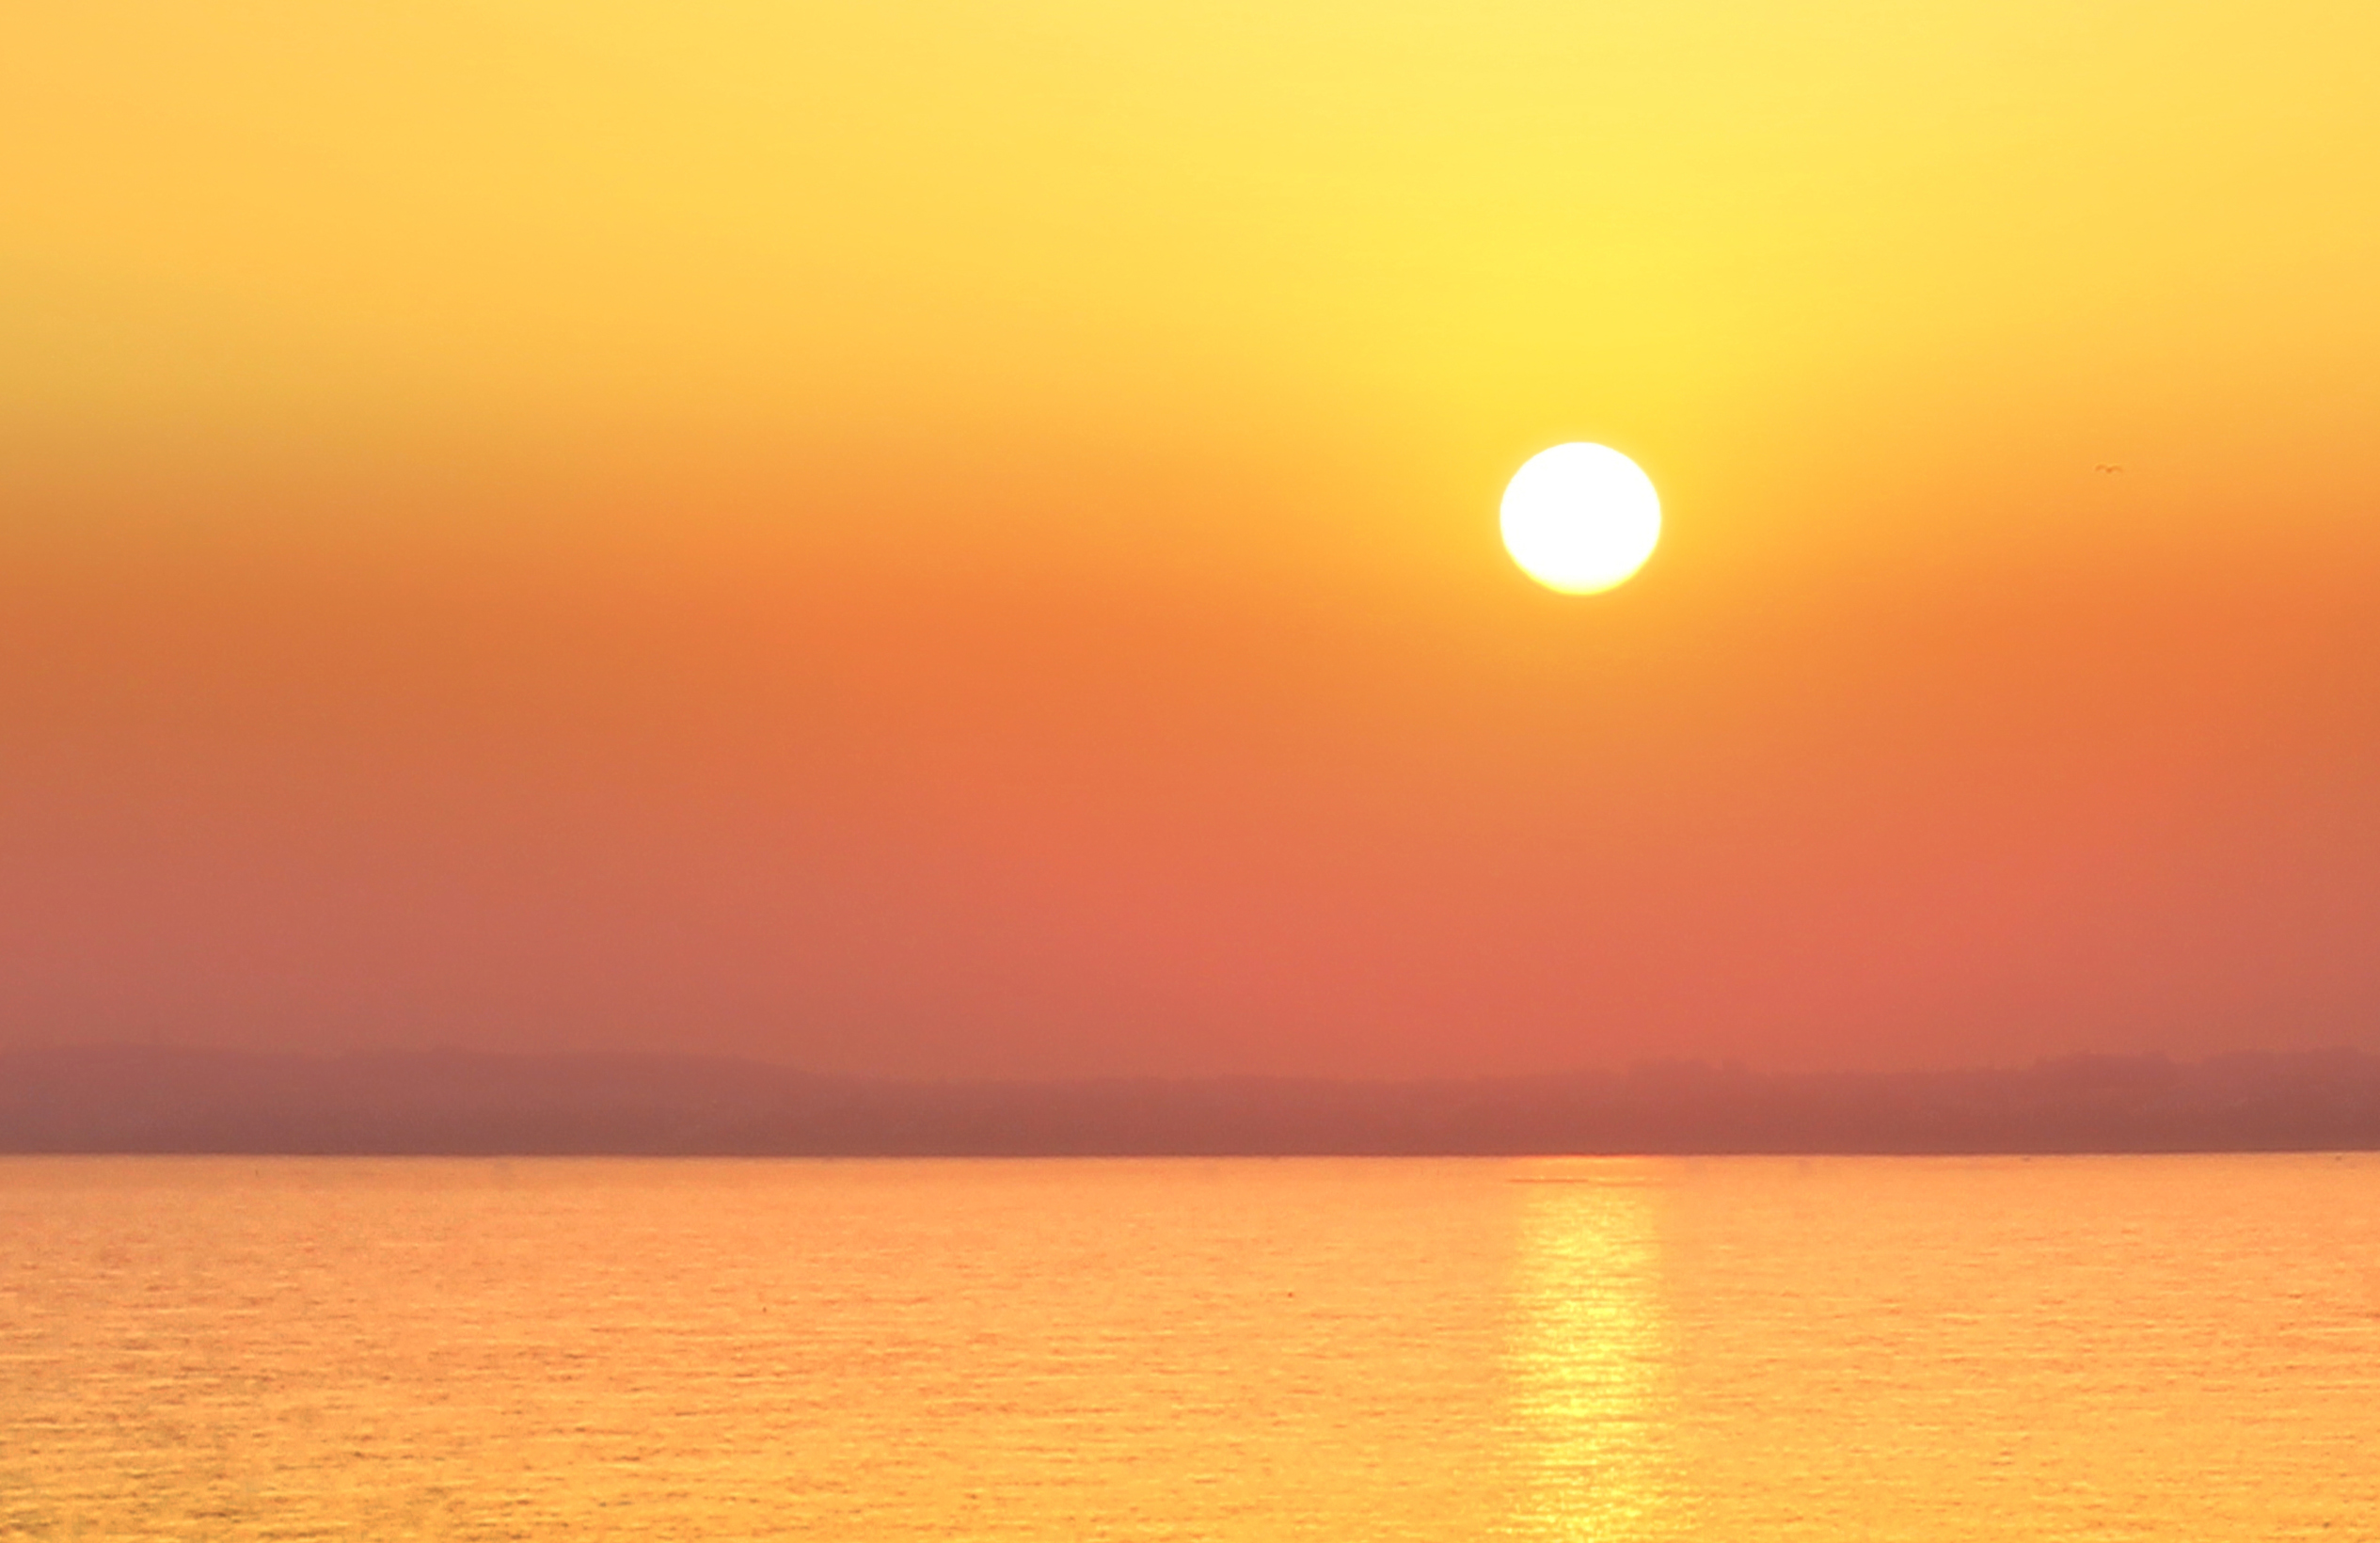 Hazy sunset over a calm sea - summer holidays photo